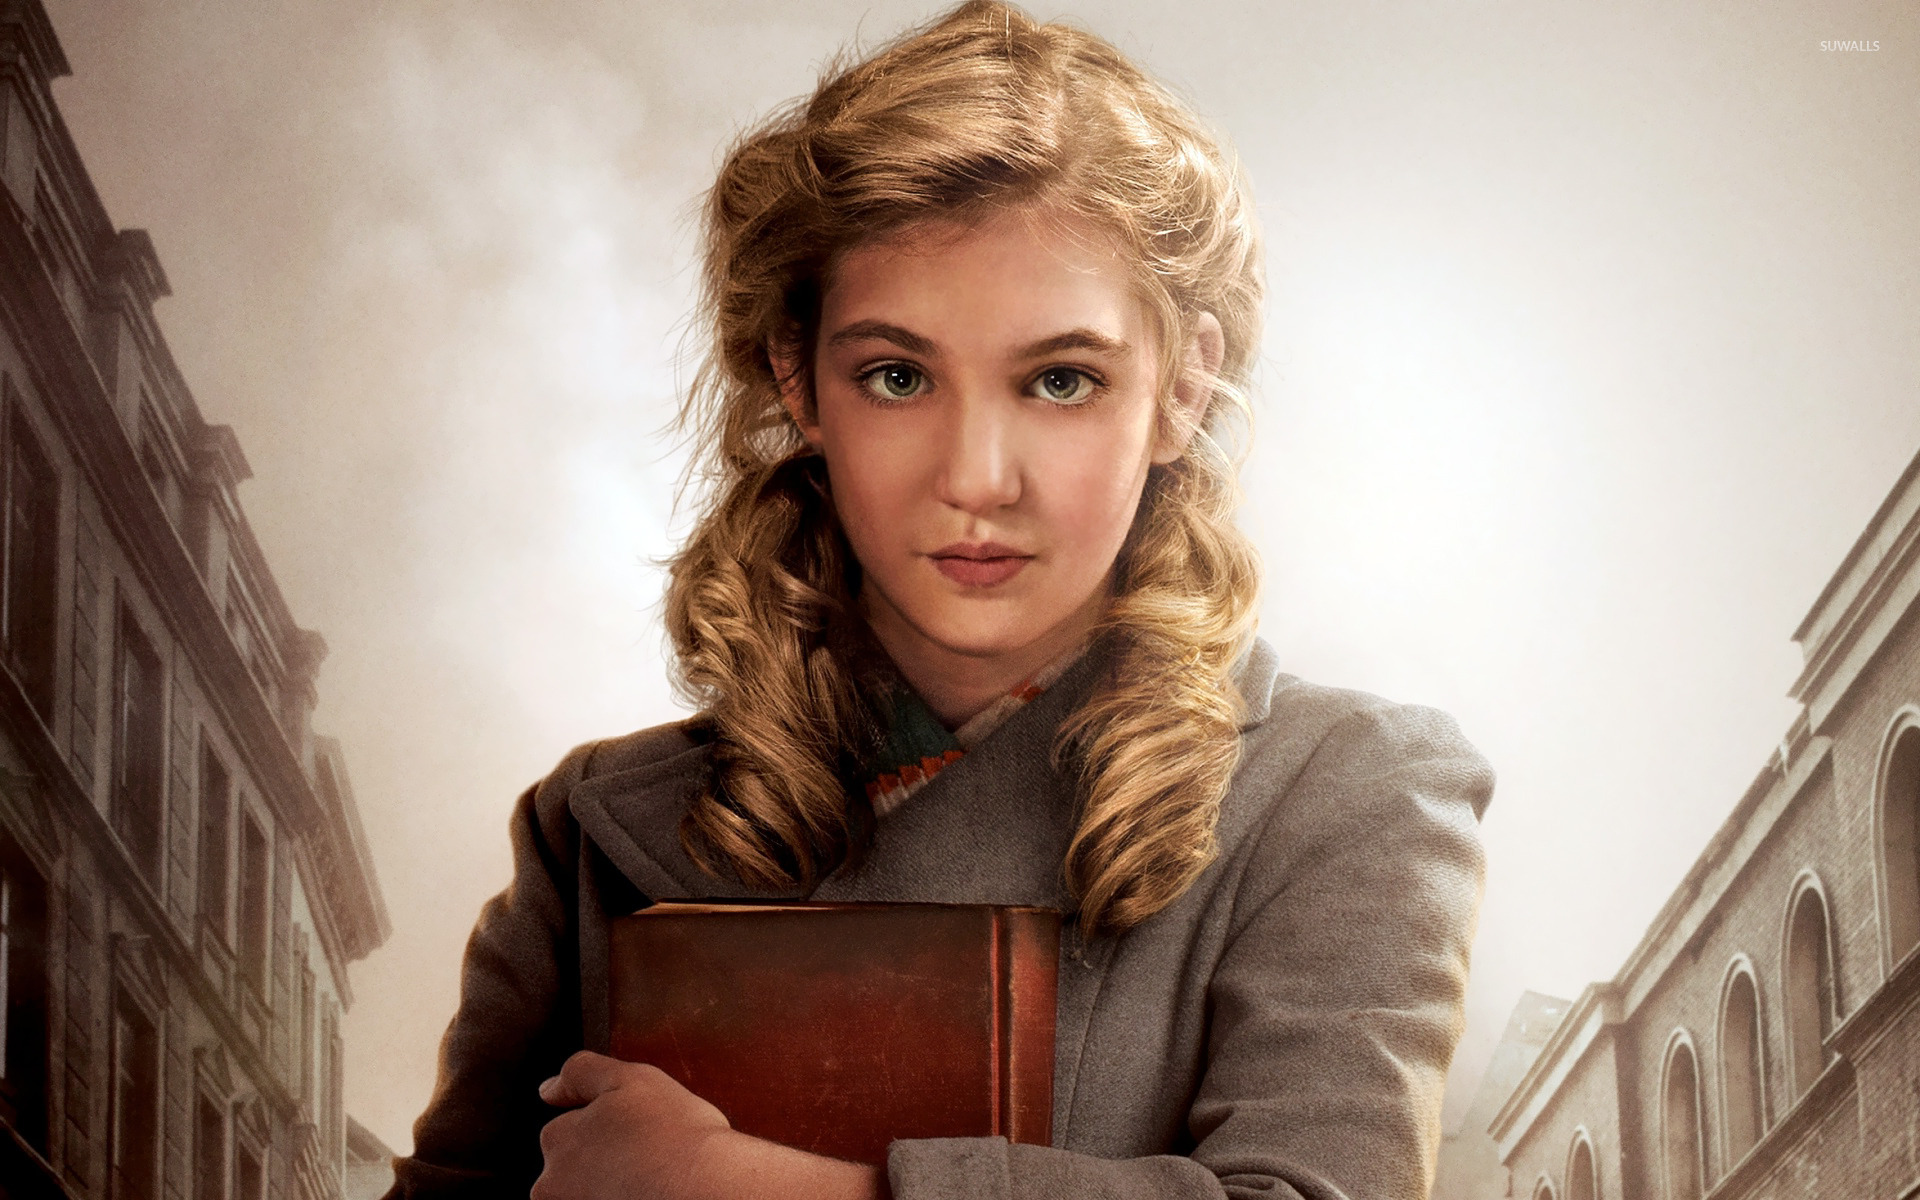 liesel the book thief movie  liesel the book thief